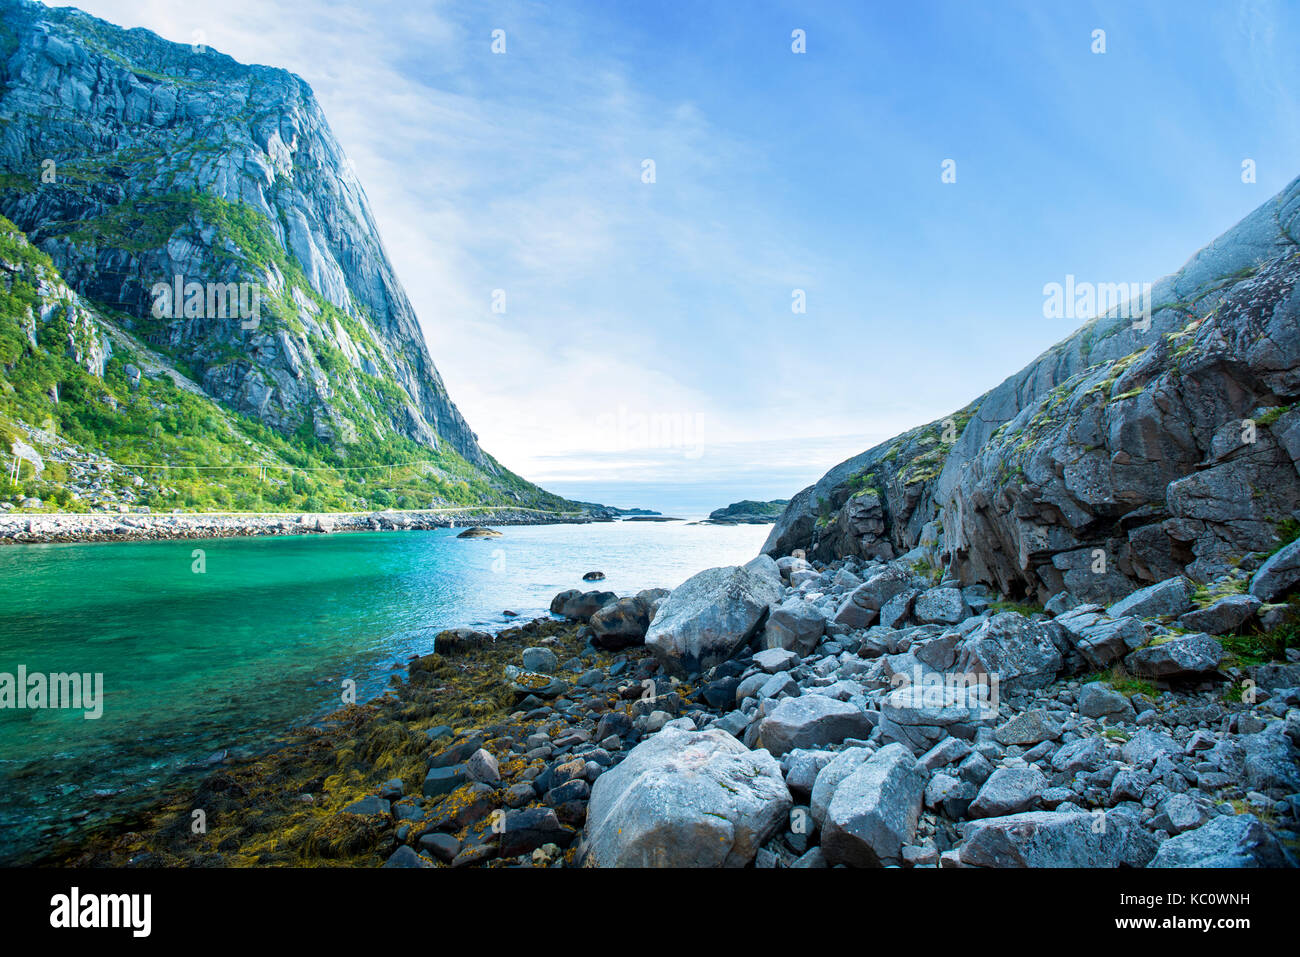 Looking out to sea from Djupfjorden near Henningsvaer, Lofoten, Norway. - Stock Image